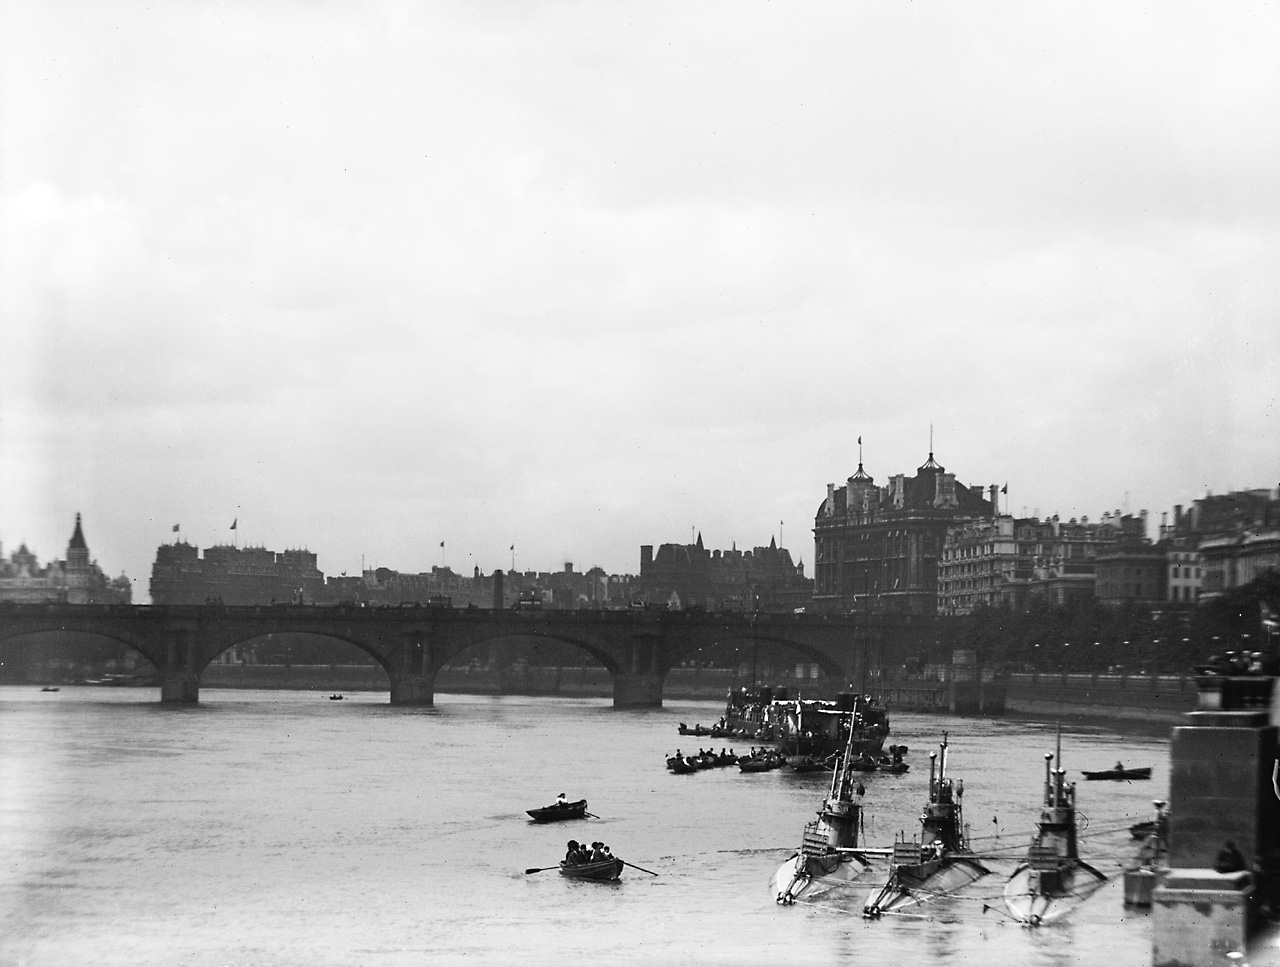 1909 photograph of Royal Navy submarines in the River